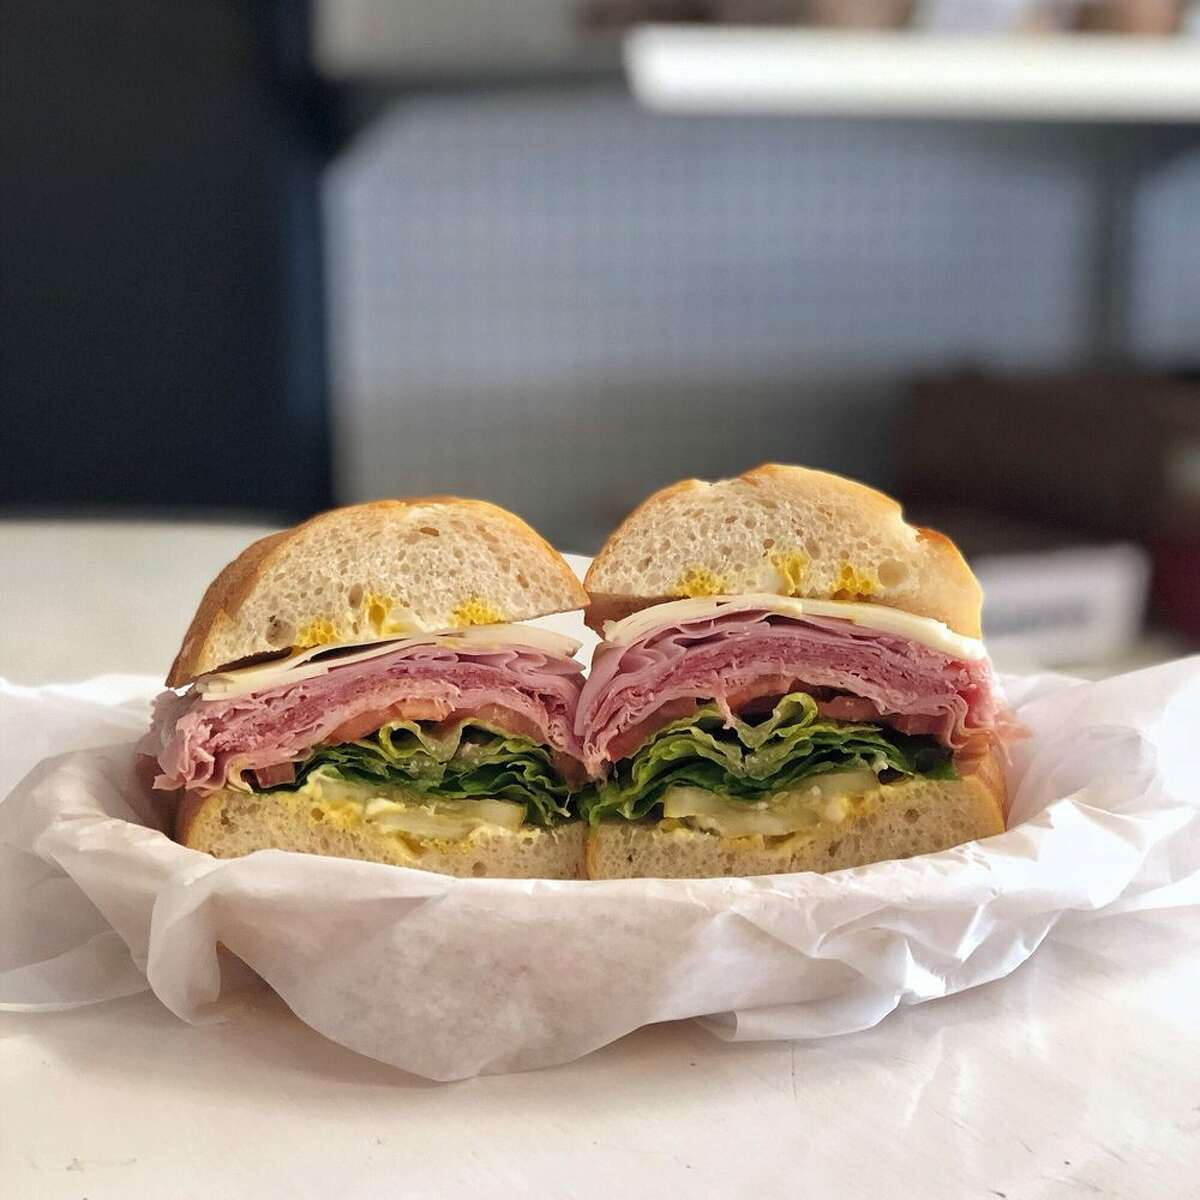 ALAMEDA Santoro's Italian Market & Deli: If you've been searching for the perfect Italian deli sandwich, piled high with meat, make your way to Alameda. The pictured sandwich has mortadella, prosciutto, salami, and provolone cheese. 475 Santa Clara Ave., Alameda